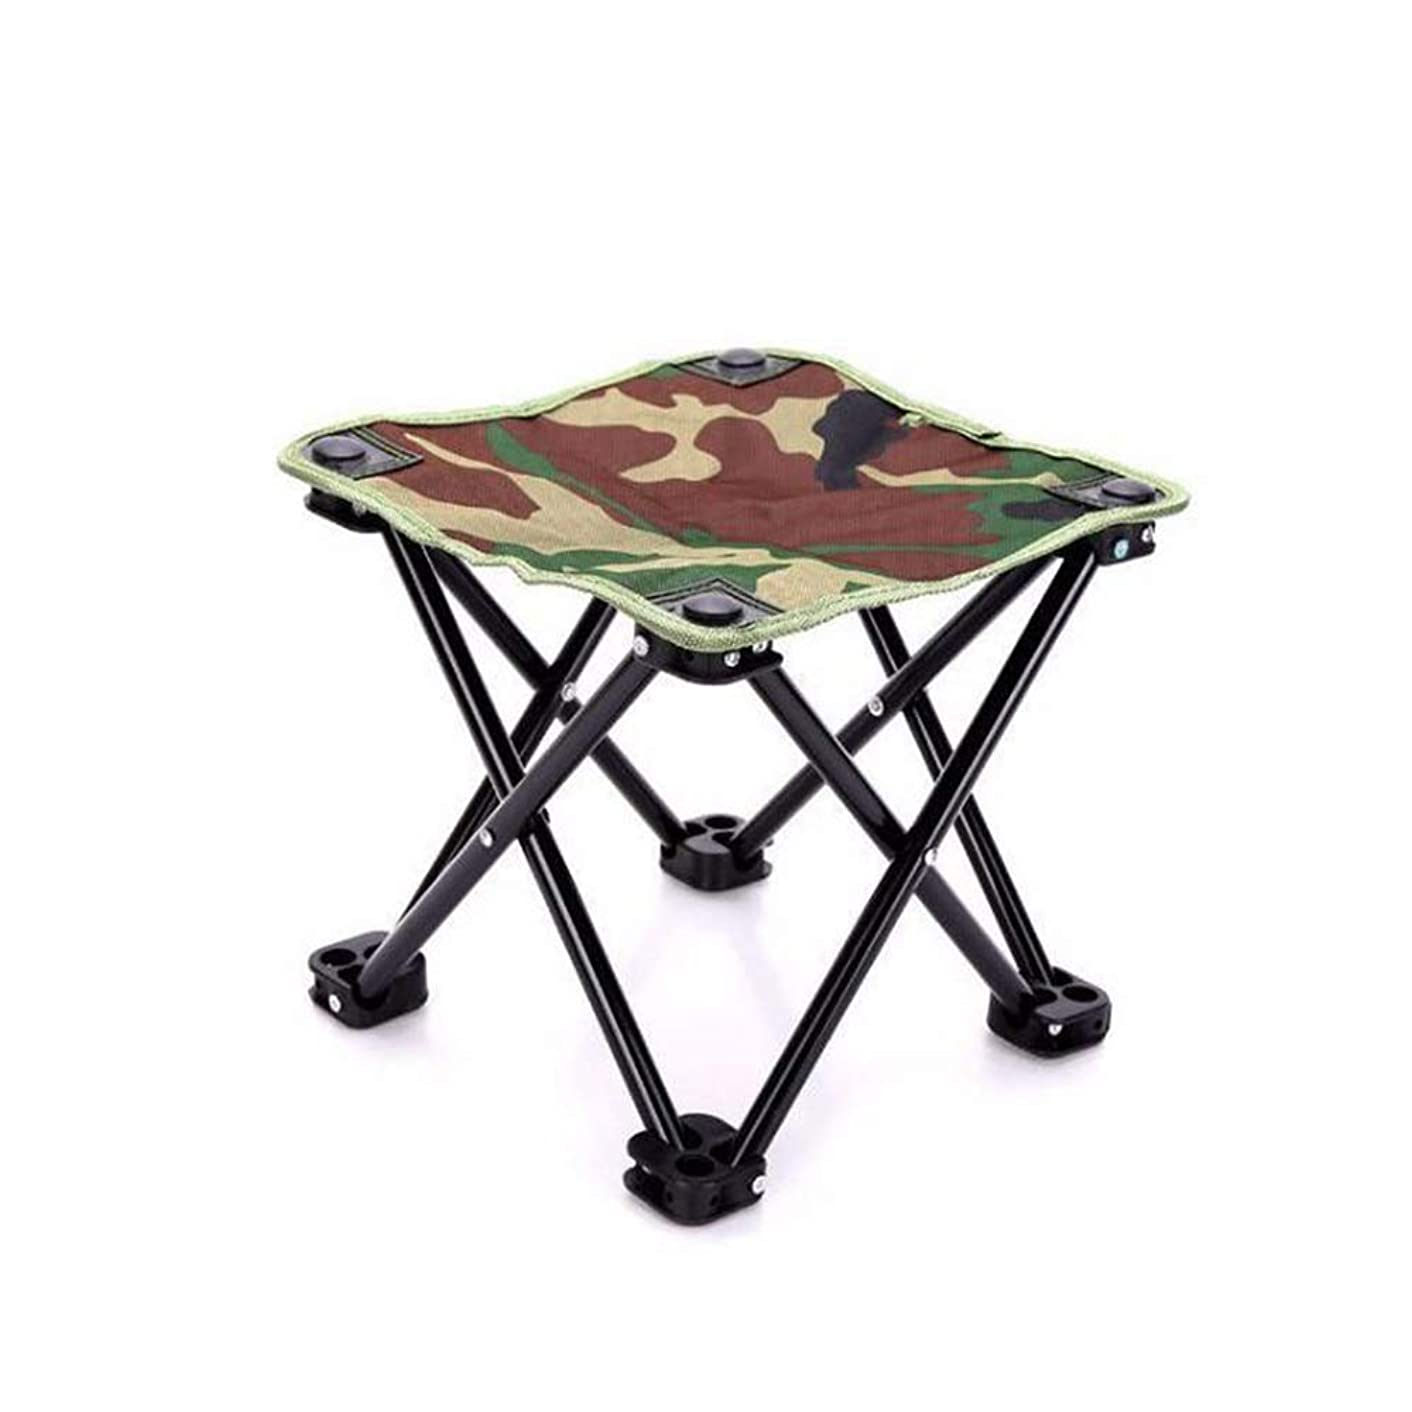 Folding Camping Stool, Mini Folding Stool Portable Chair for Beach, Picnic Party, Camping, Barbecue, Fishing, Hiking, 600D Oxford Cloth with Portable Bag,10.83''10.83''9.84''(Green Camouflage)